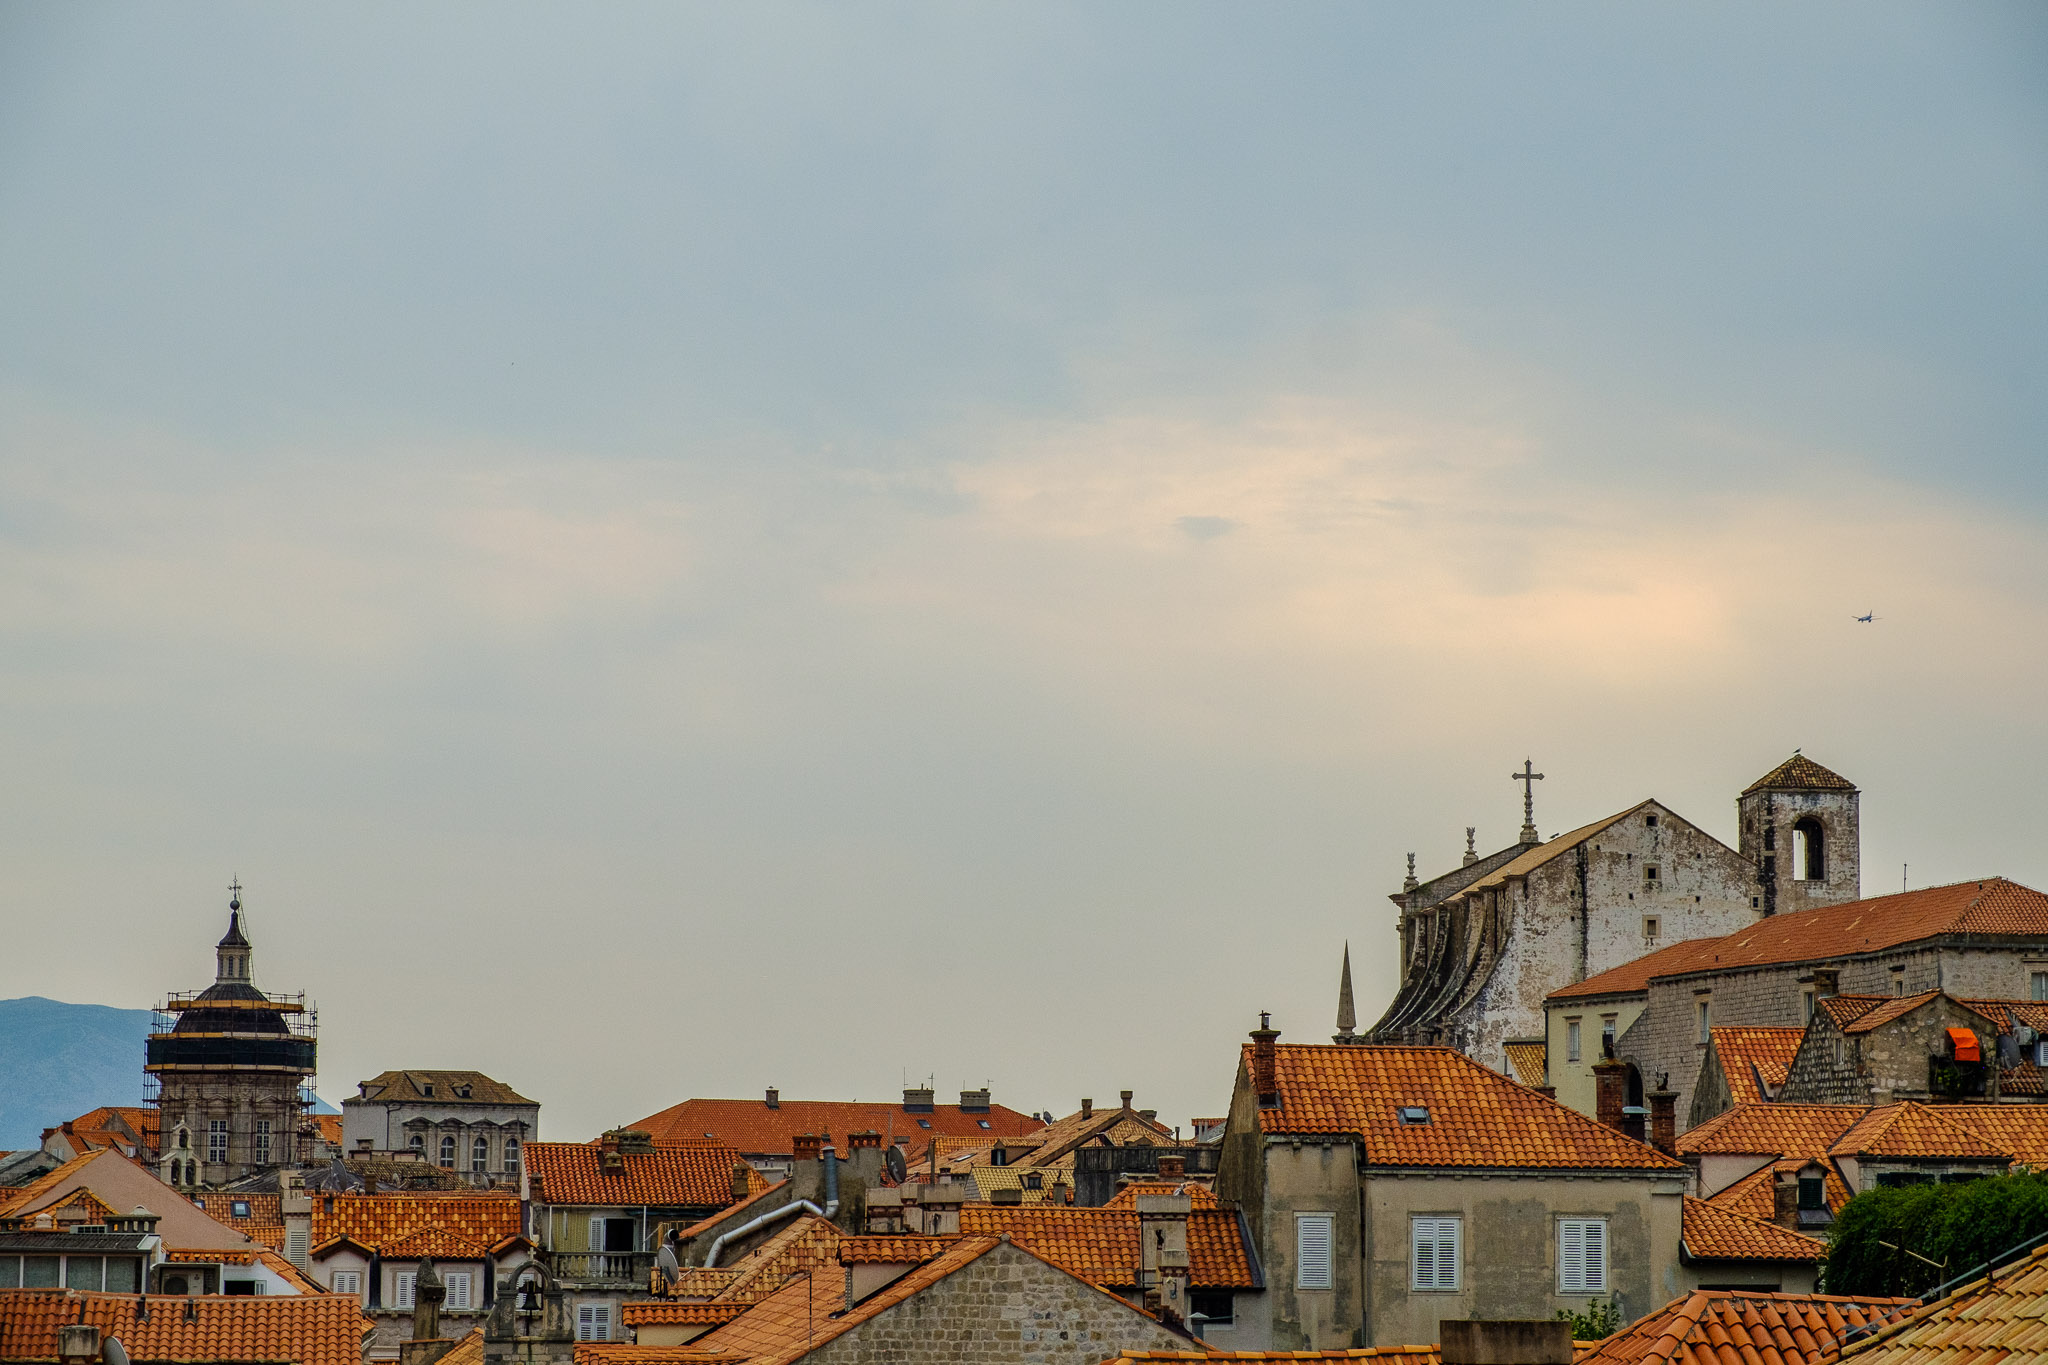 Dubrovnik. The Old Town